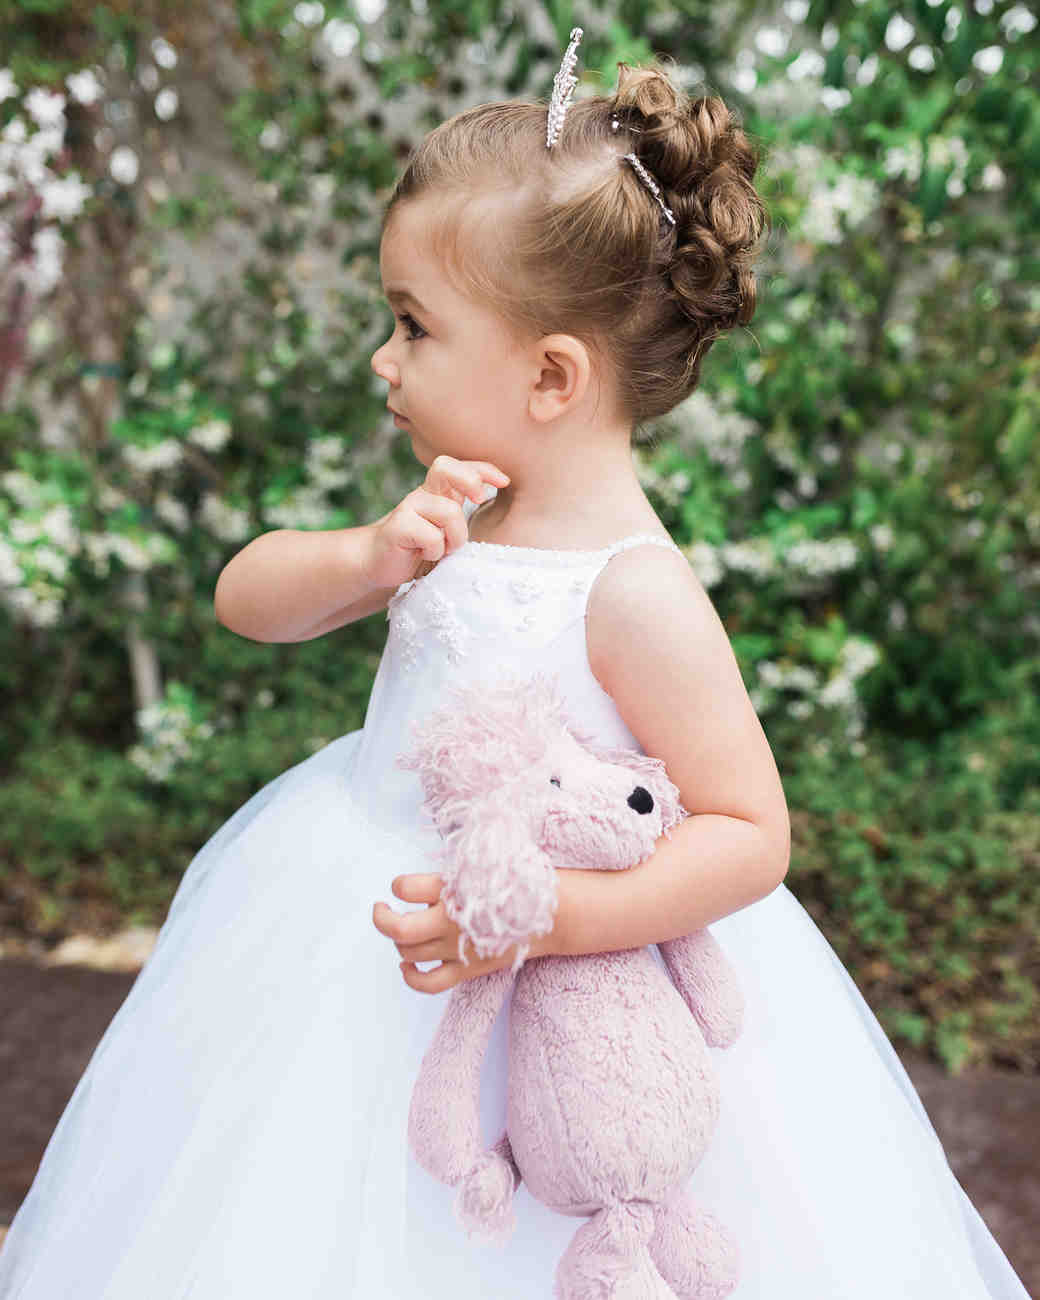 Wedding Hairstyles Boys: Adorable Hairstyle Ideas For Your Flower Girls